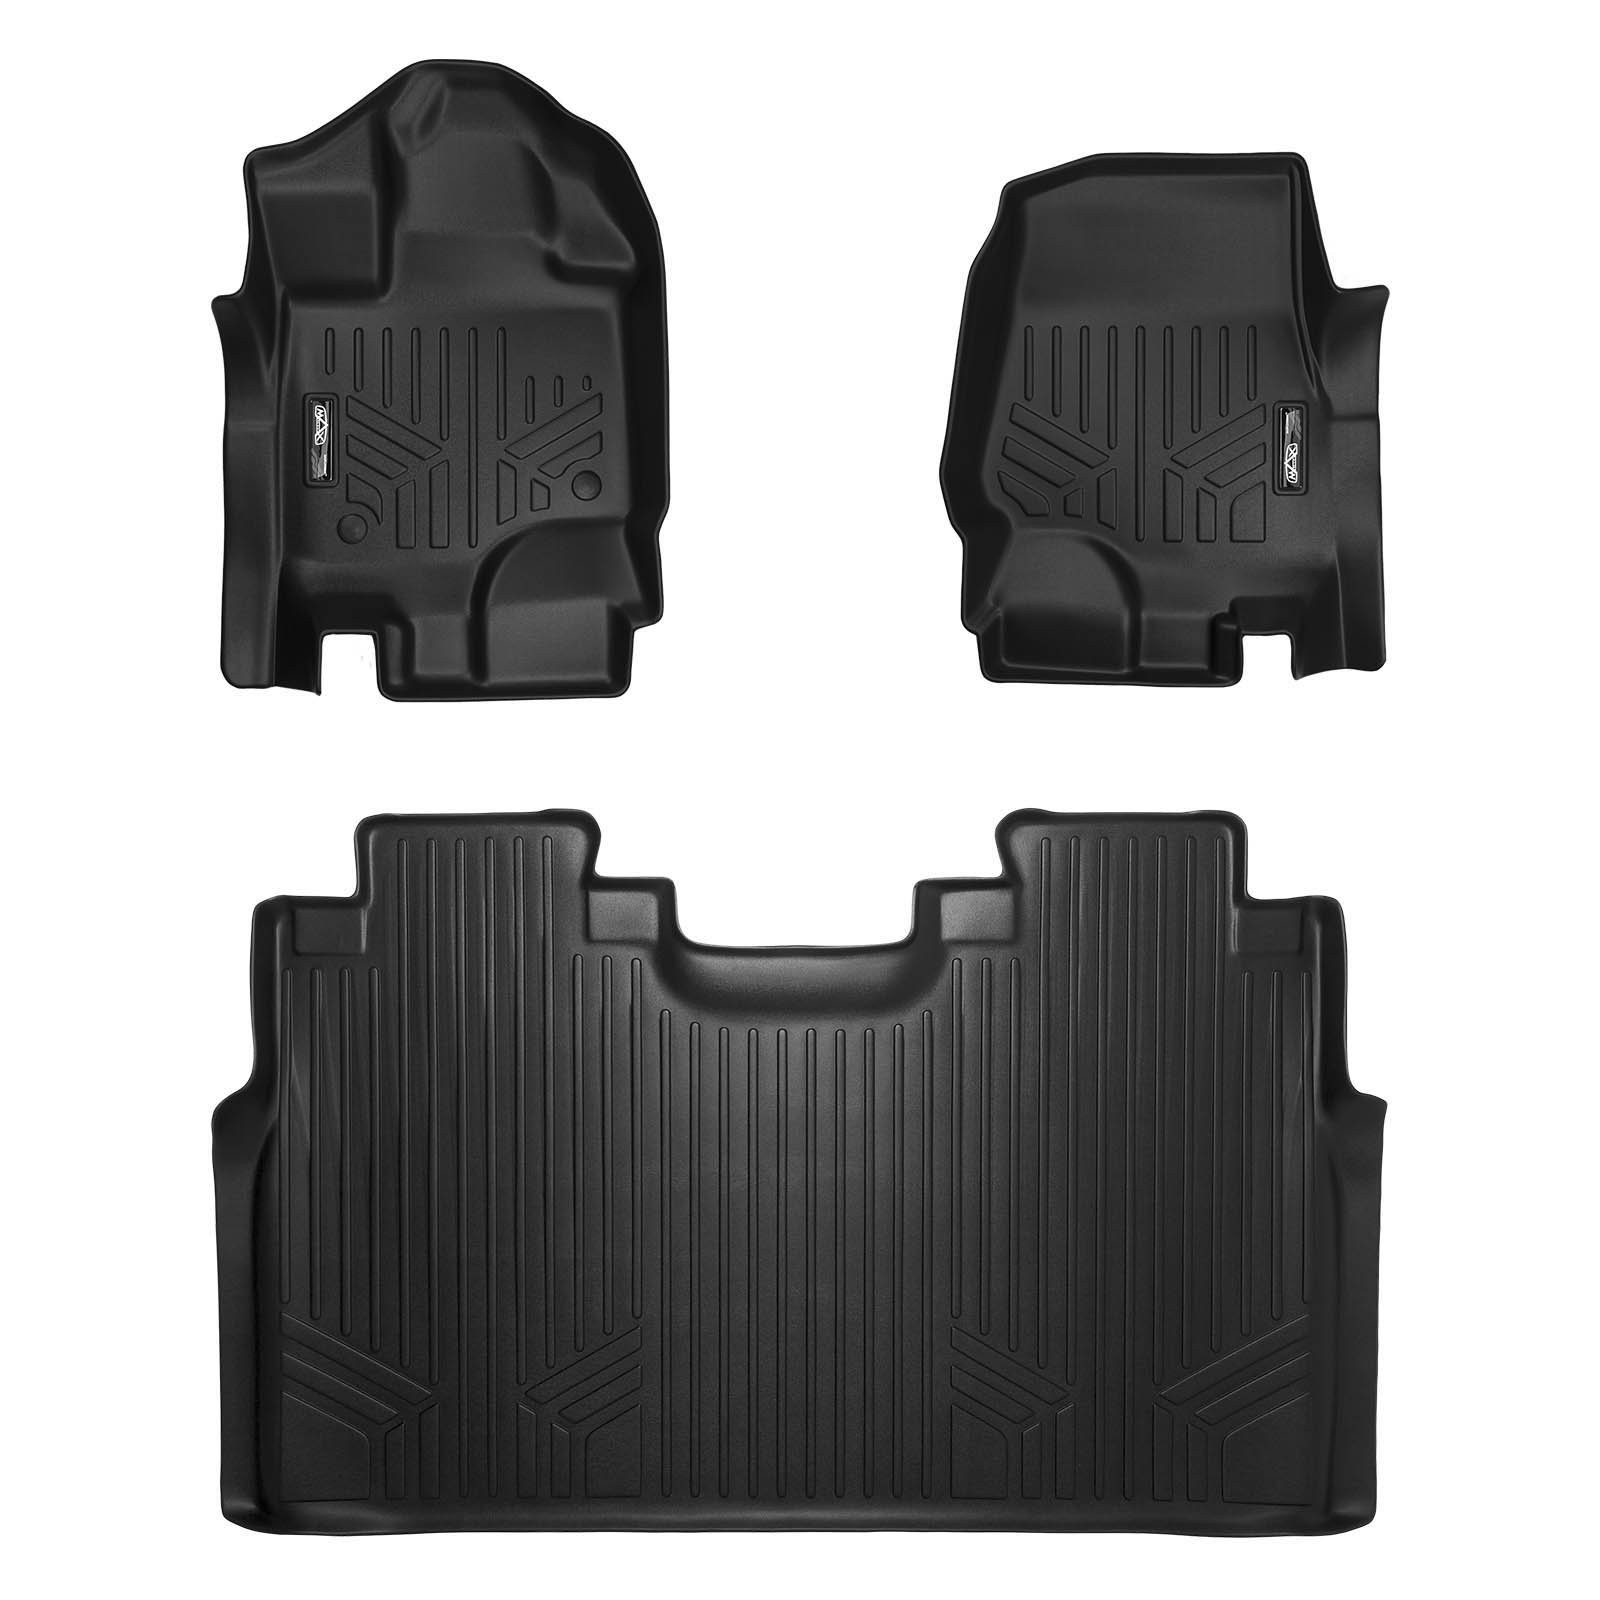 MAXLINER Floor Mats 2 Row Liner Set Black for 2015-2019 Ford F-150 SuperCrew Cab With 1st Row Bucket Seats by MAX LINER